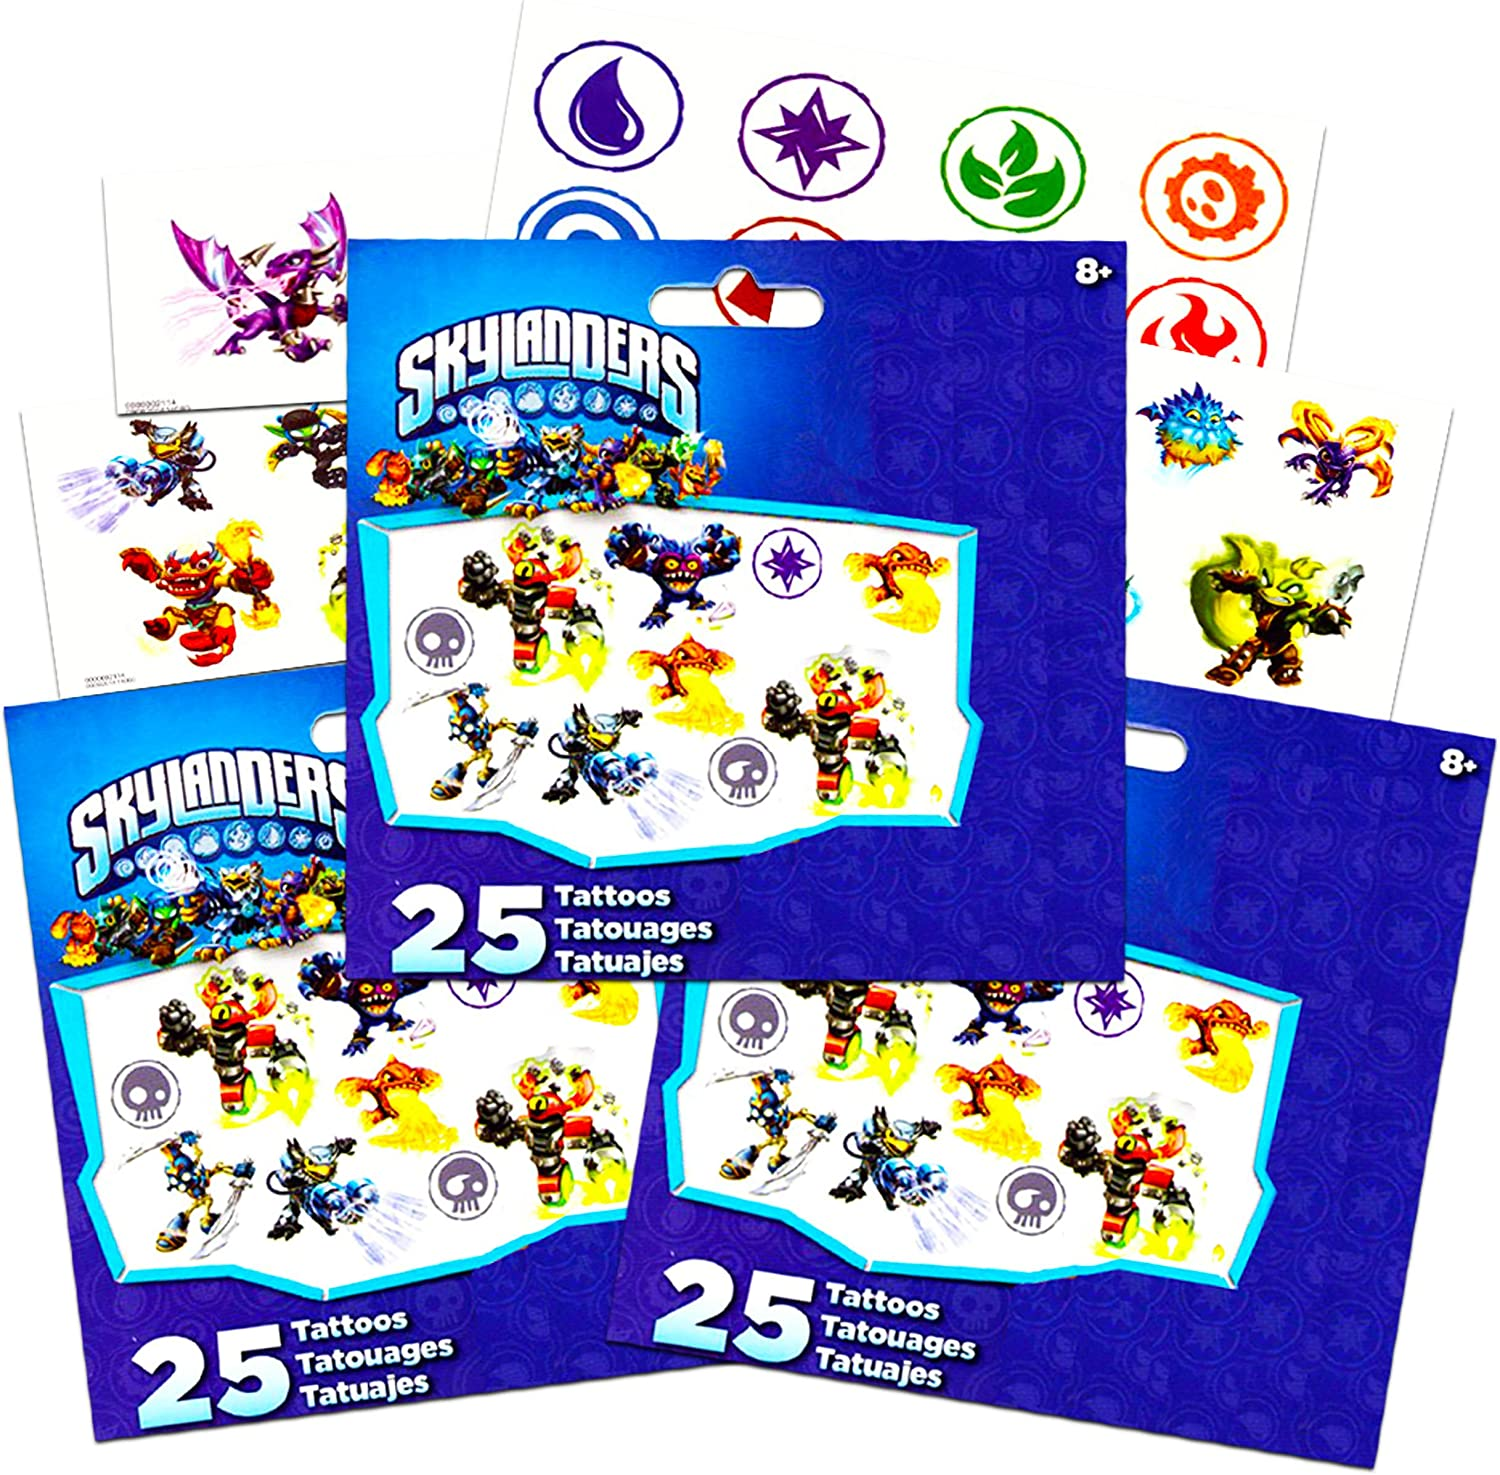 12 Skylanders Superchargers Stickers Kid Party Goody Loot Gift Bag Favor Supply